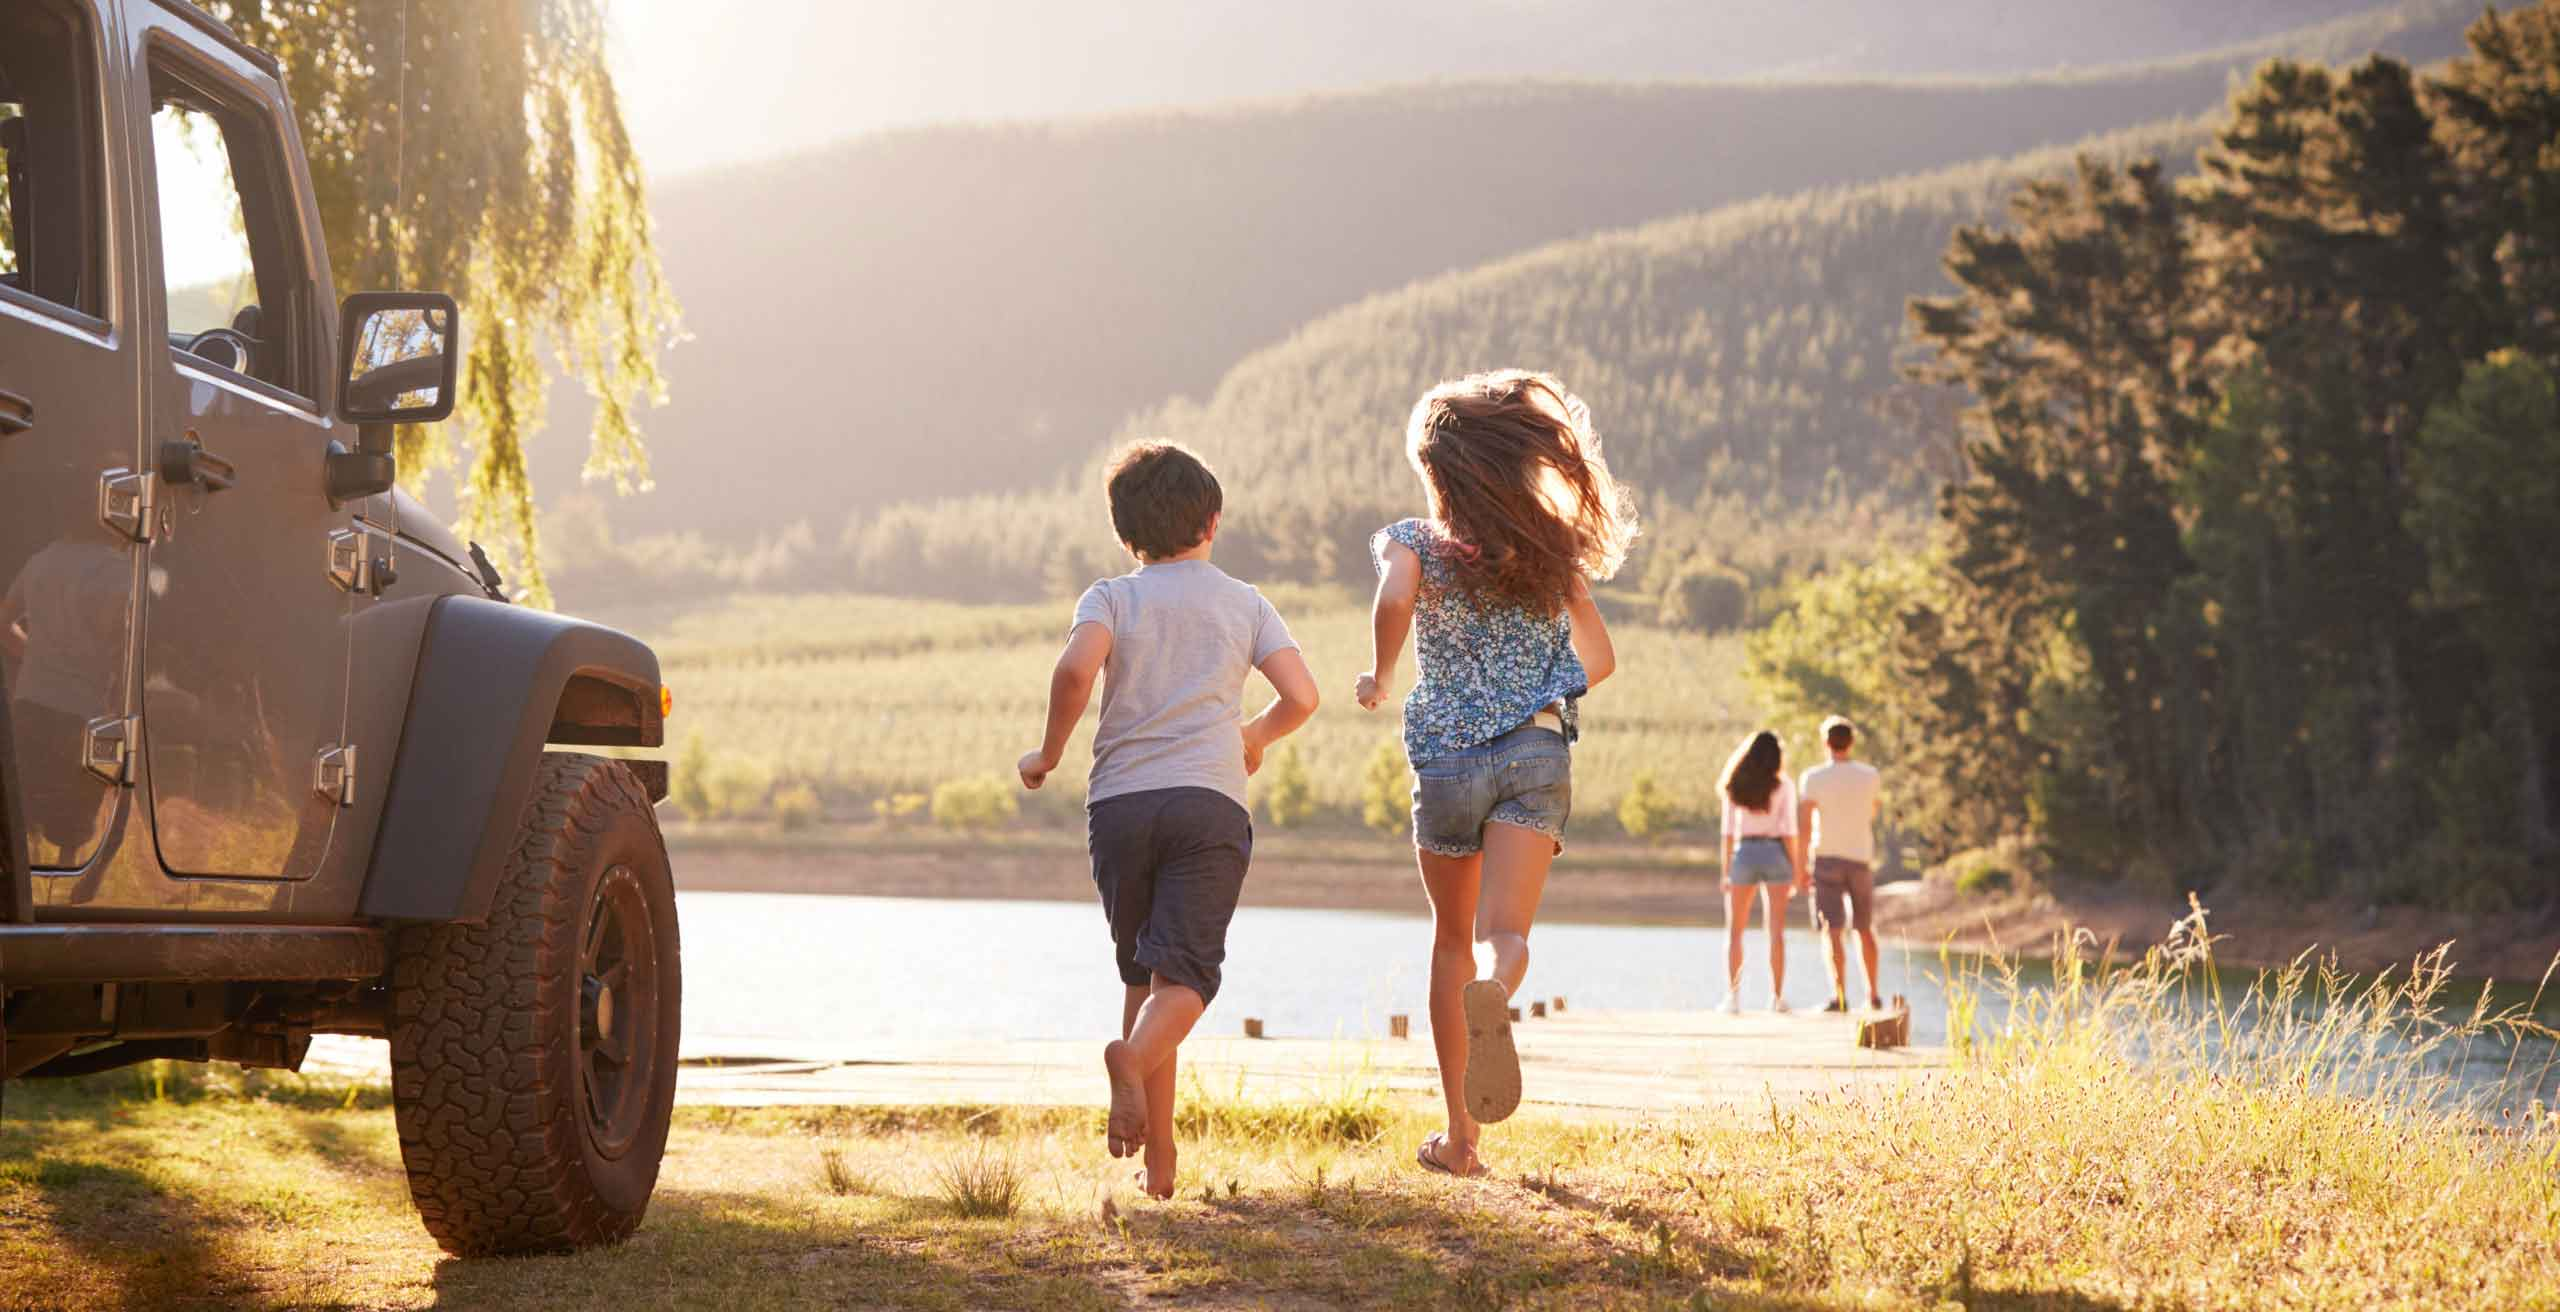 10 Epic Family Vacation Ideas 2021 Familyvacationist